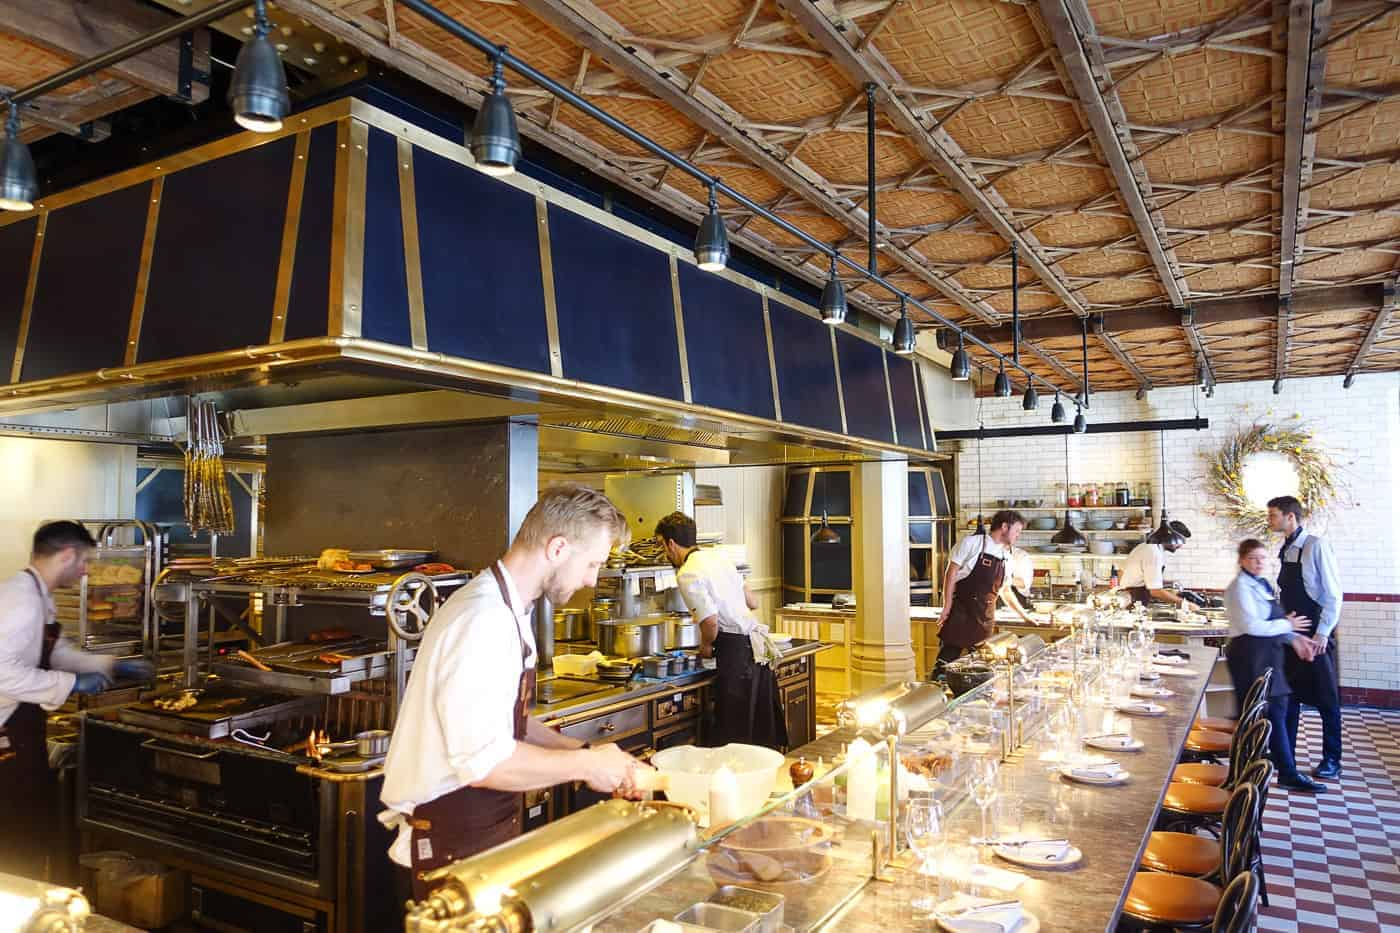 chiltern firehouse kitchen